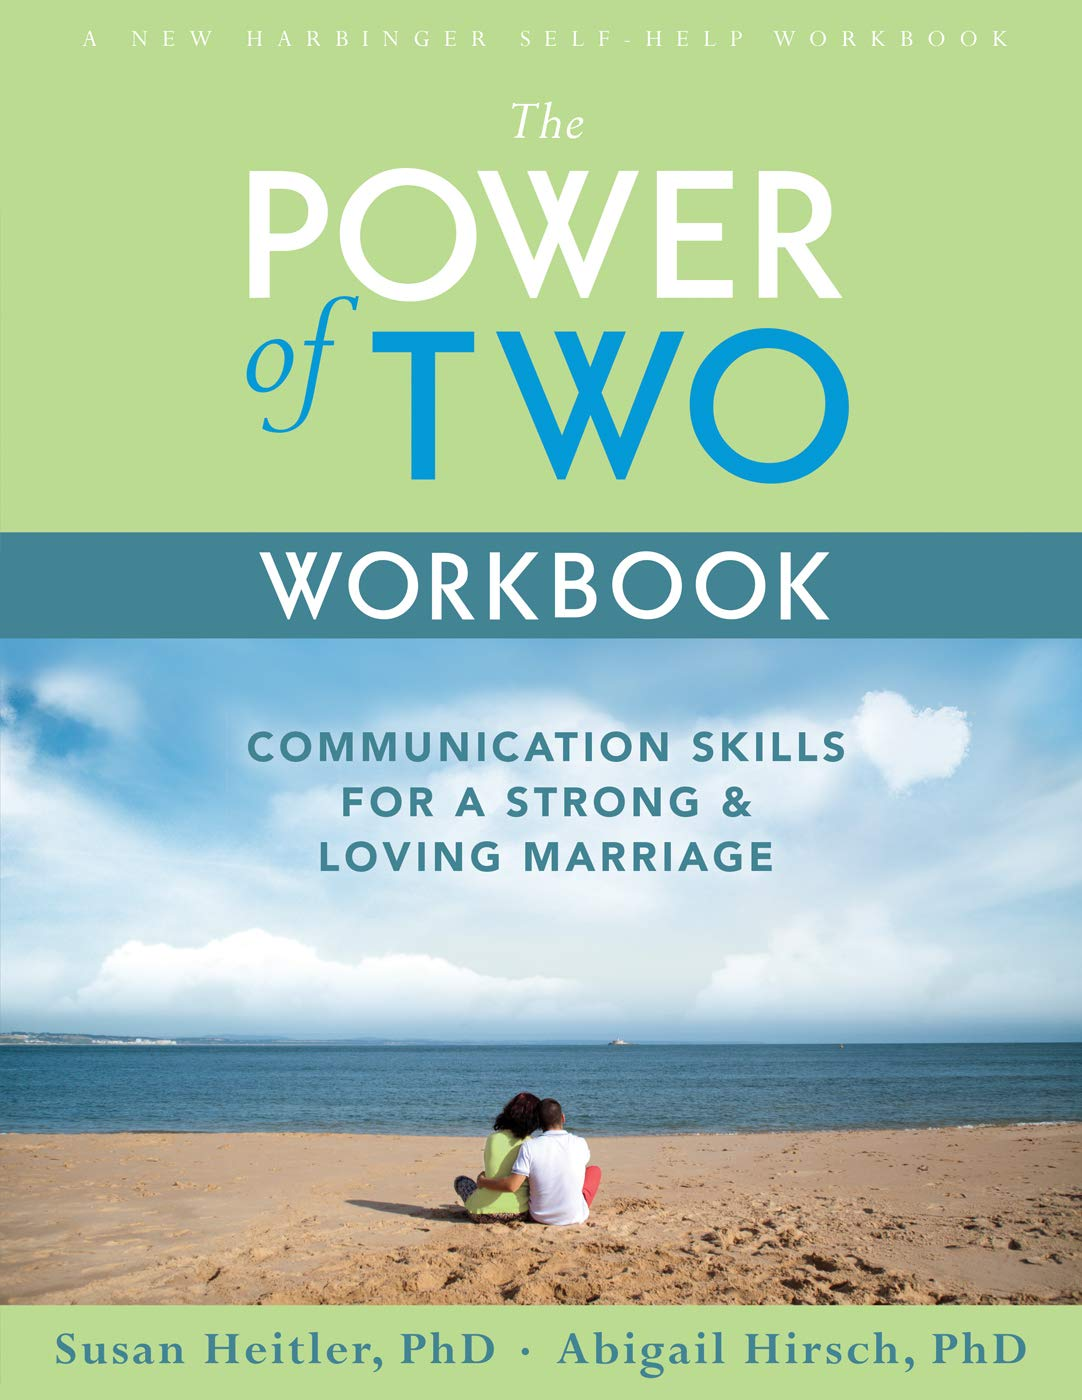 The Power of Two Workbook: Communication Skills for a Strong & Loving Marriage PDF